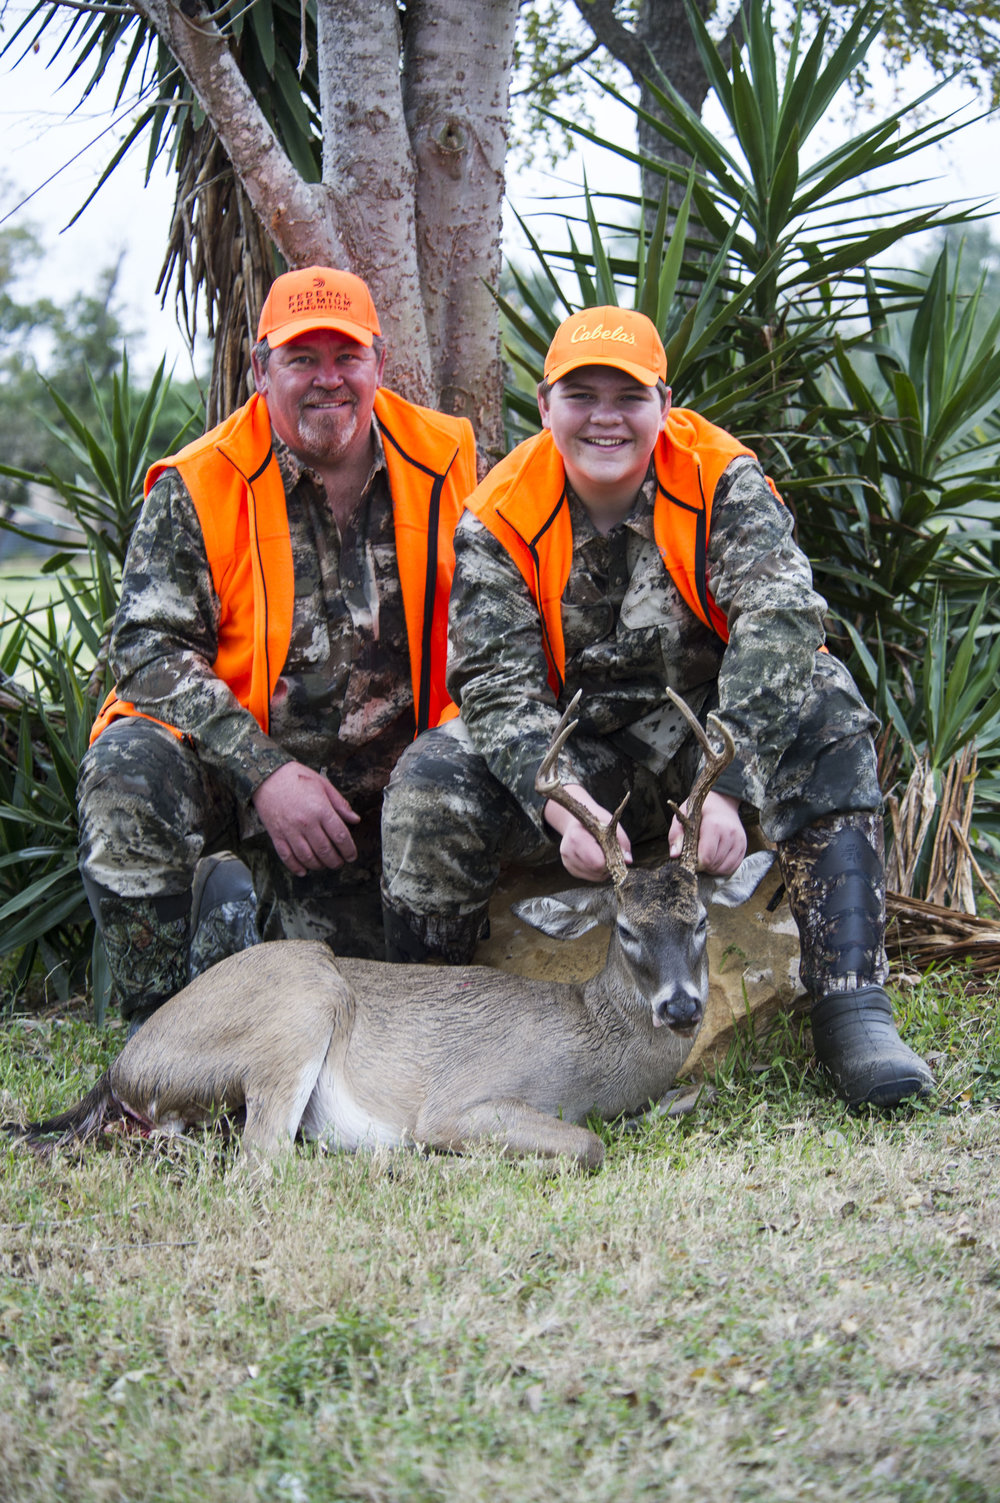 """- Mitchell and Blake Anderson from Rigby, ID, were all smiles after Blake took his first buck. Blake said, """"I was just hoping to be calm enough to shoot, but boy, was that exciting!"""" Mitchell chimed in, """"I was watching the deer and 'sheeblatt'—it went down instantly!"""""""